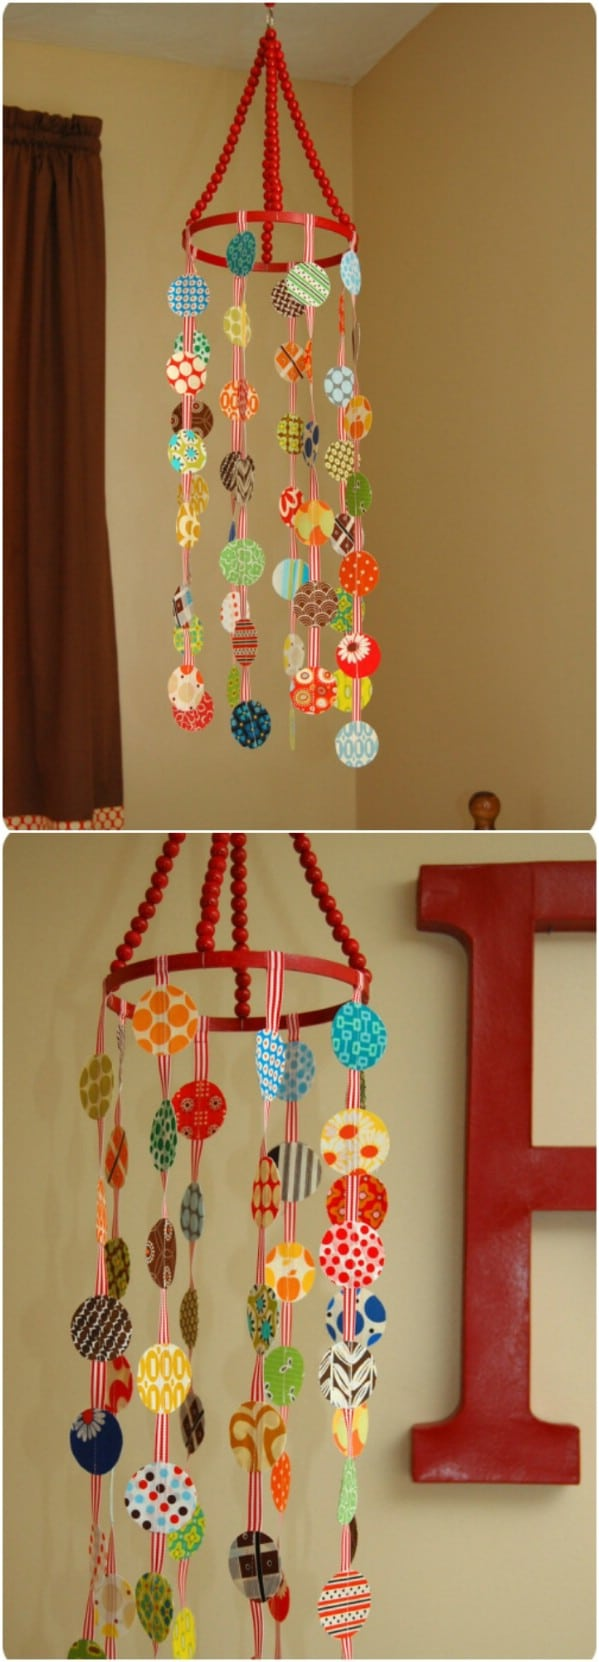 DIY Repurposed Sheet Crib Mobile